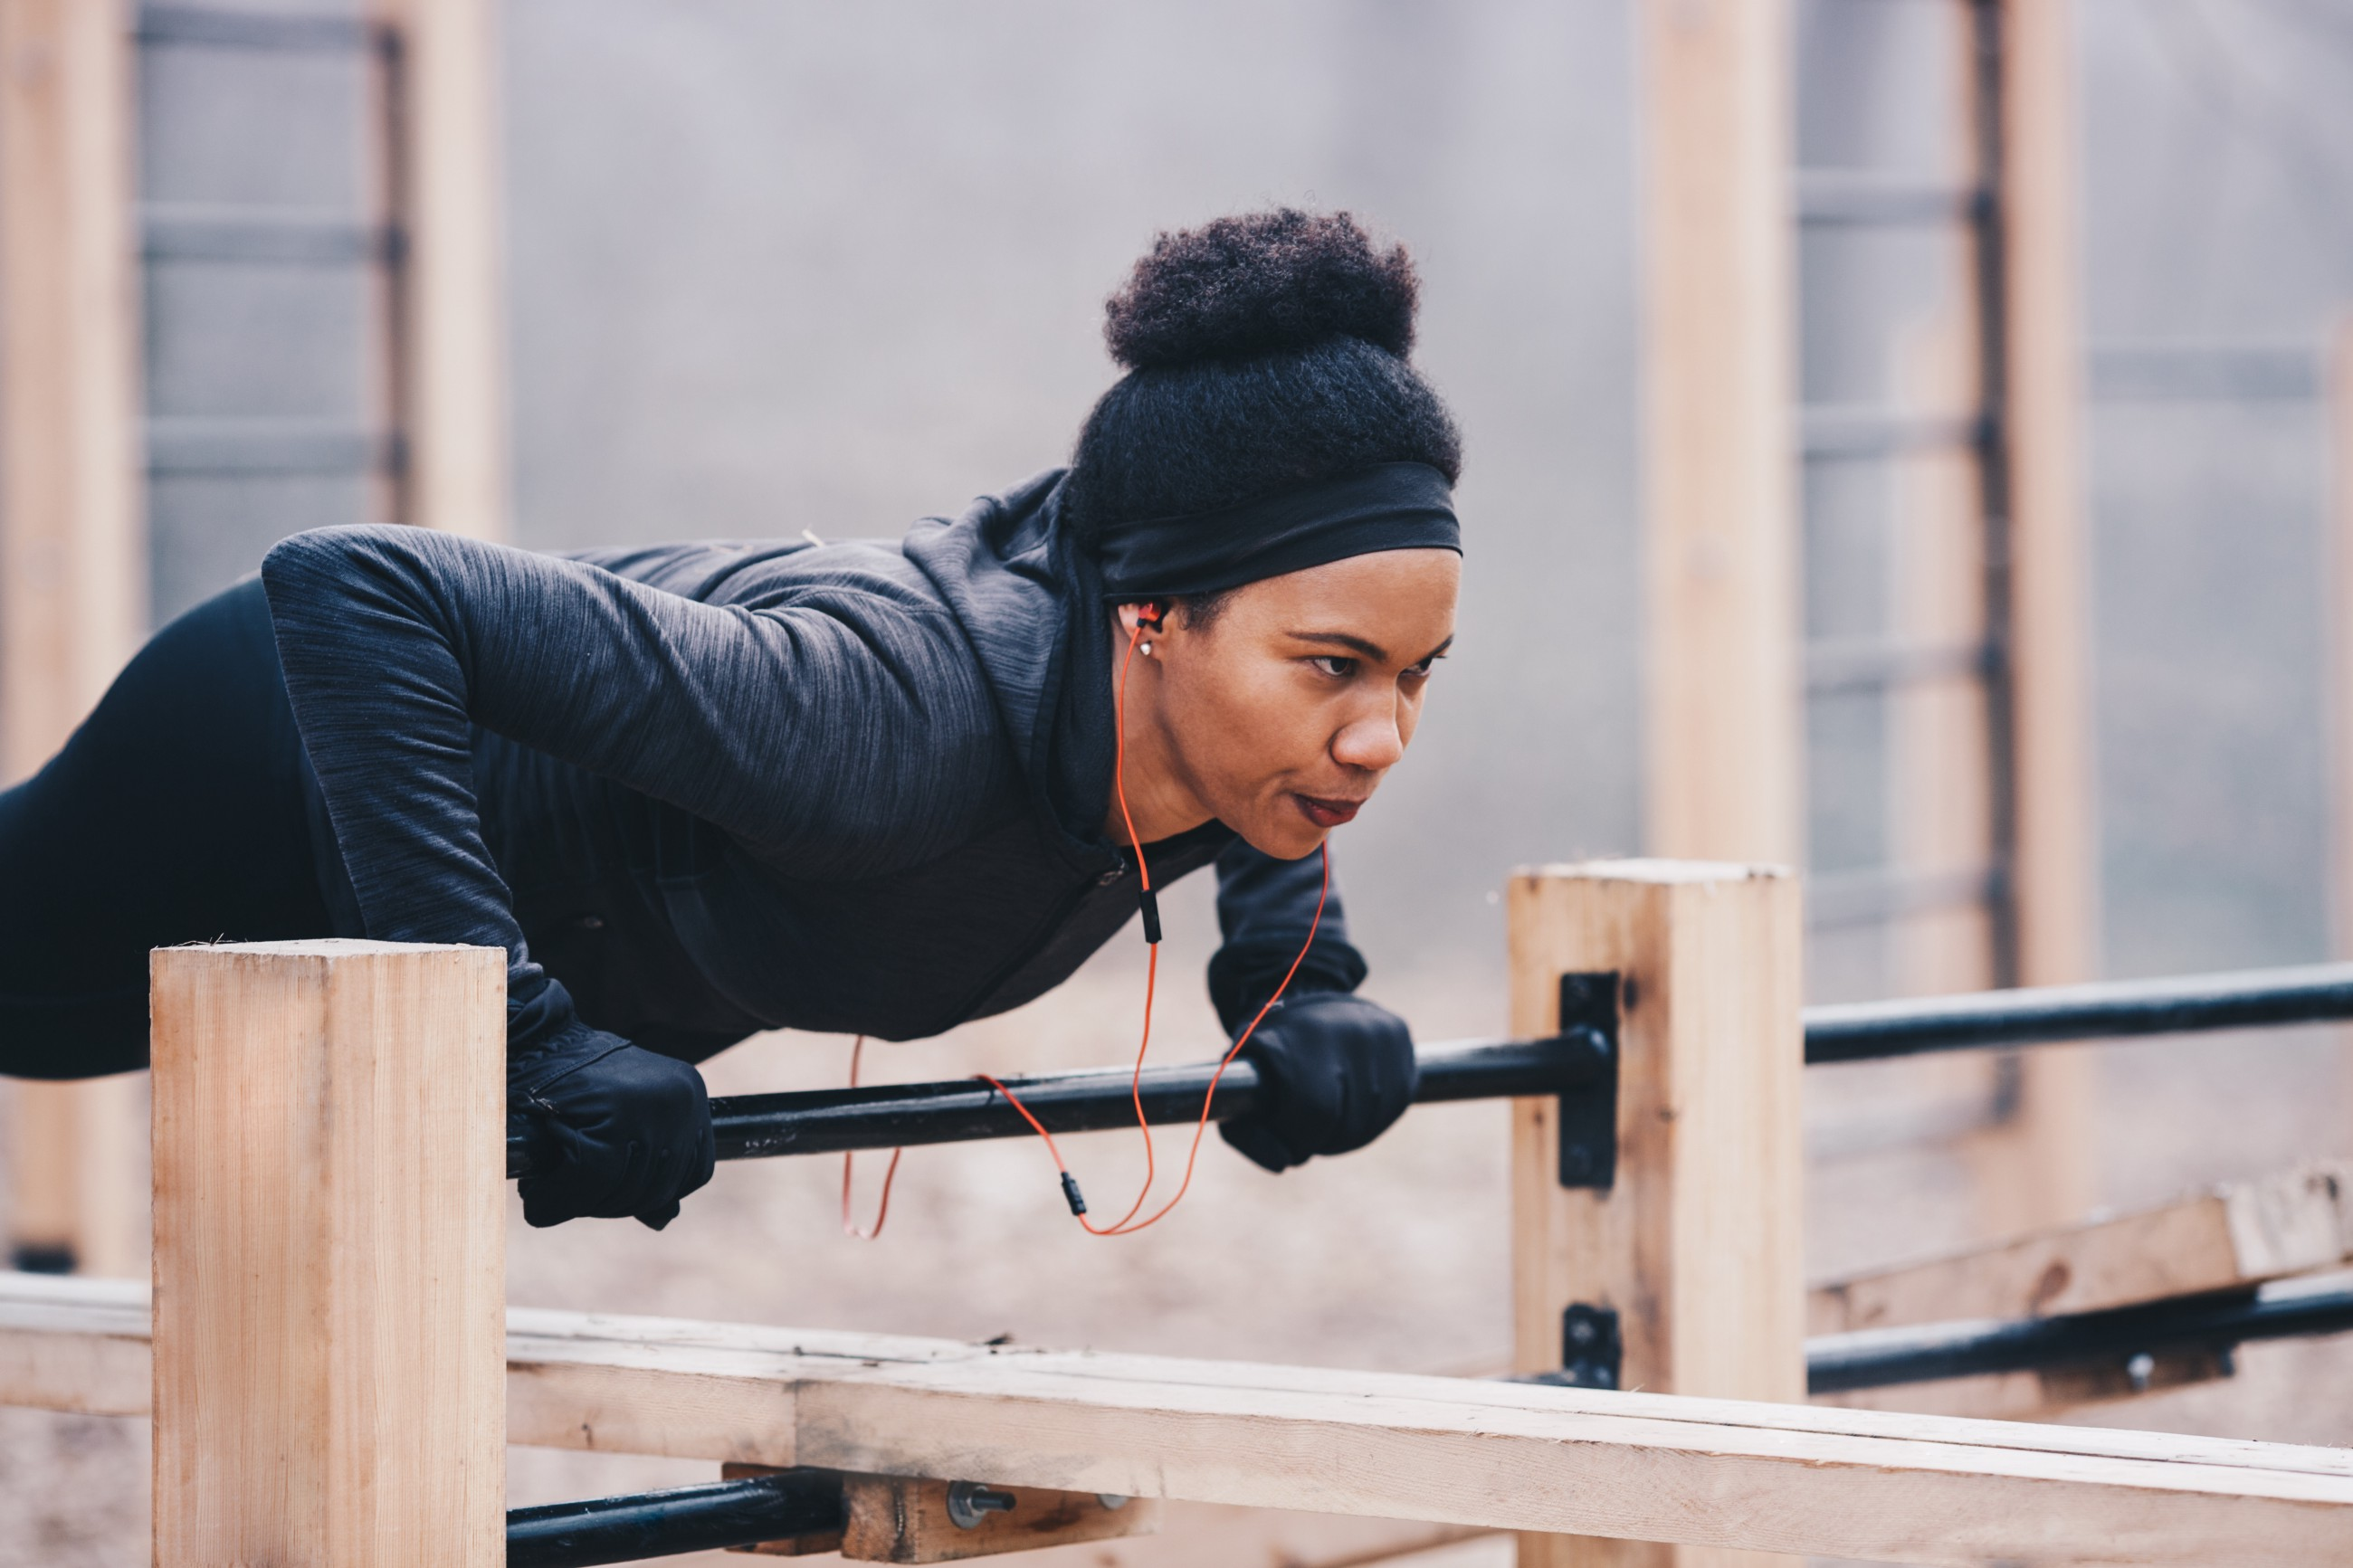 How To Do 1,000 Push-Ups in a Single Day, With Kori Miller